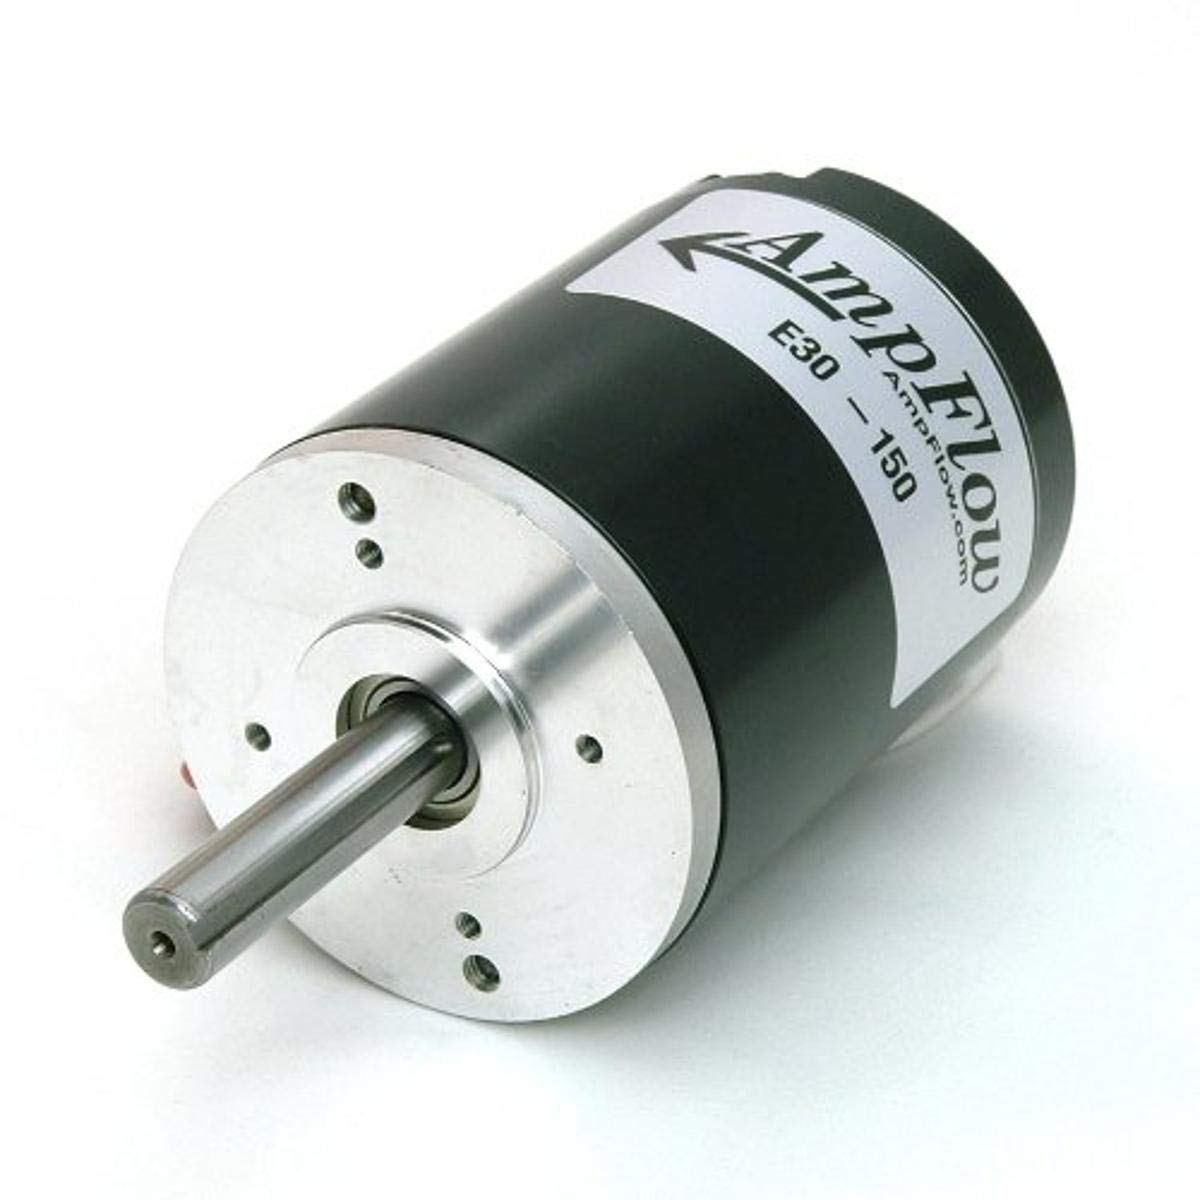 AmpFlow E30-150 Brushed Electric Motor, 12V, 24V or 36 VDC, 5600 RPM: Industrial & Scientific